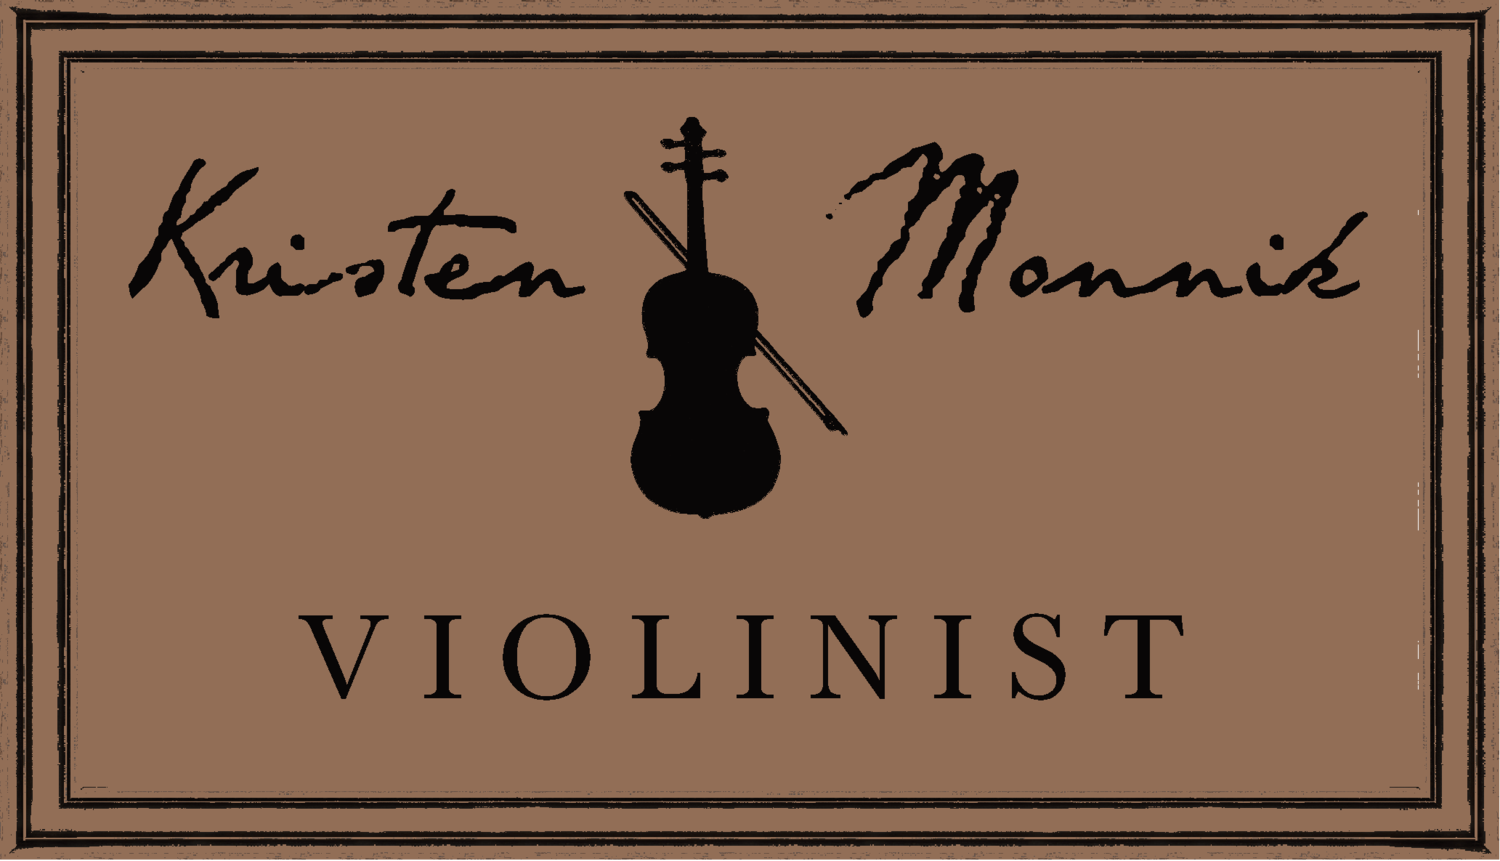 Kristen Monnik - Classical and Electric Violinist, New Orleans